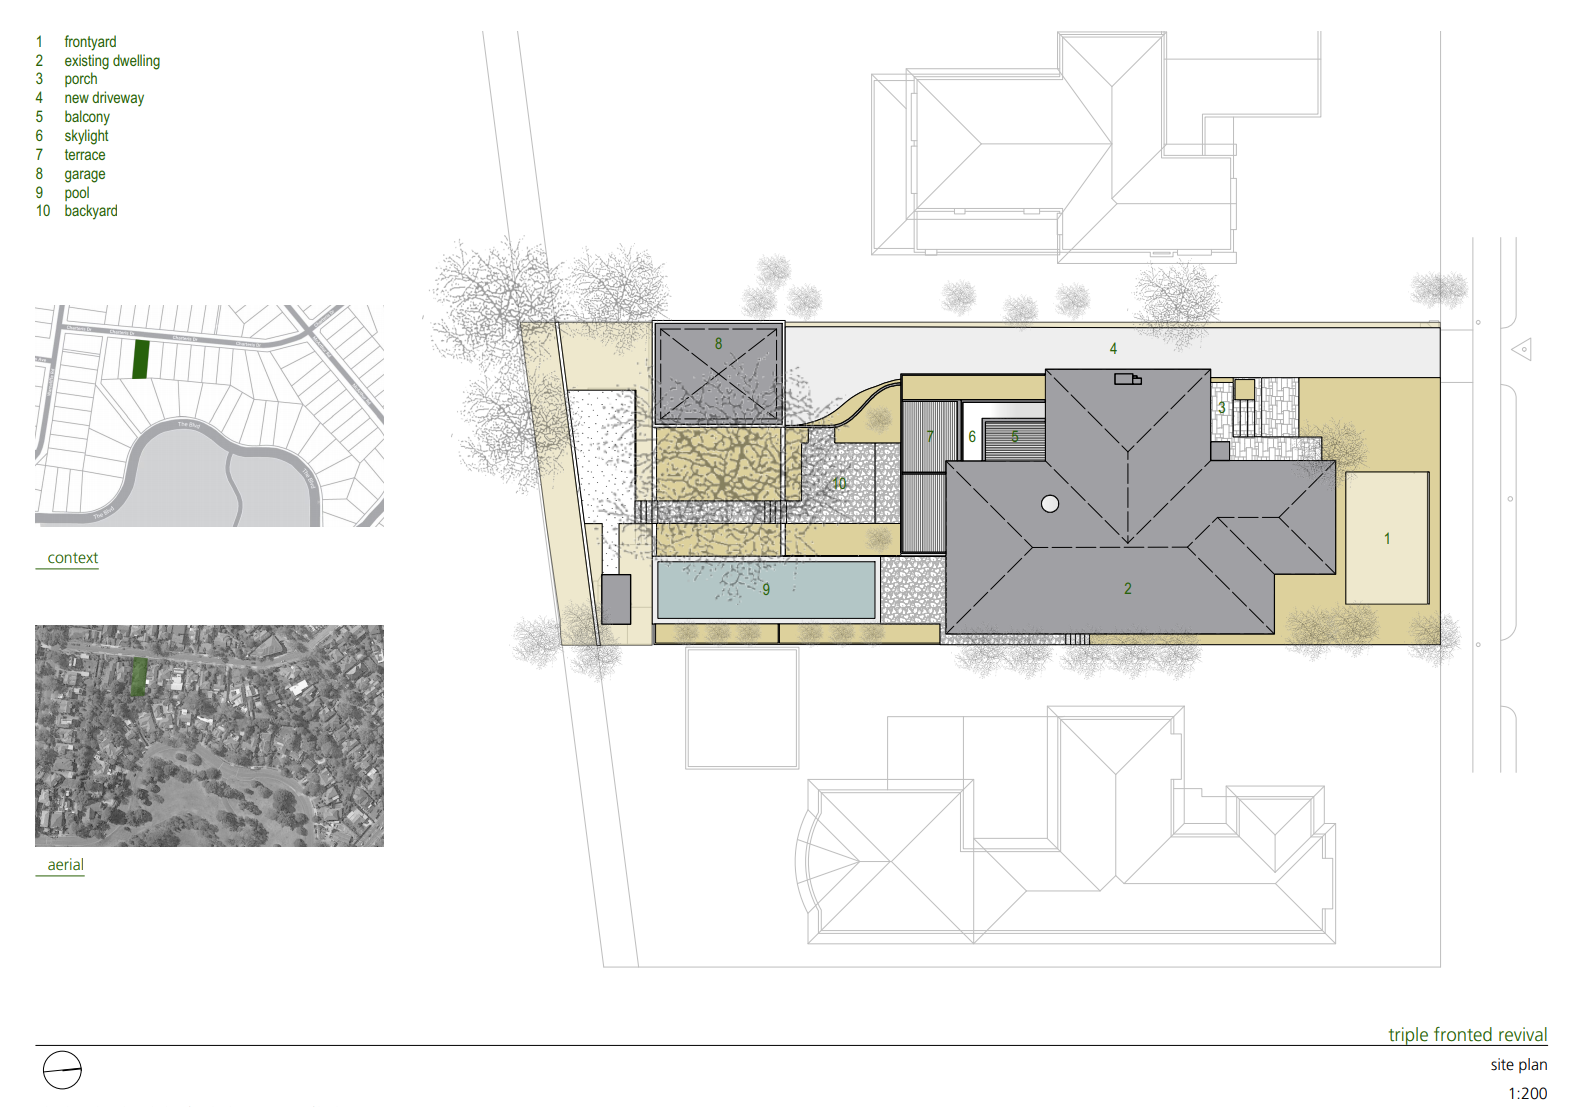 Triple Fronted Revival Site Plan  Photo 13 of 15 in A Post-War Bungalow in Australia Gains an Indoor/Outdoor Entertainment Hub